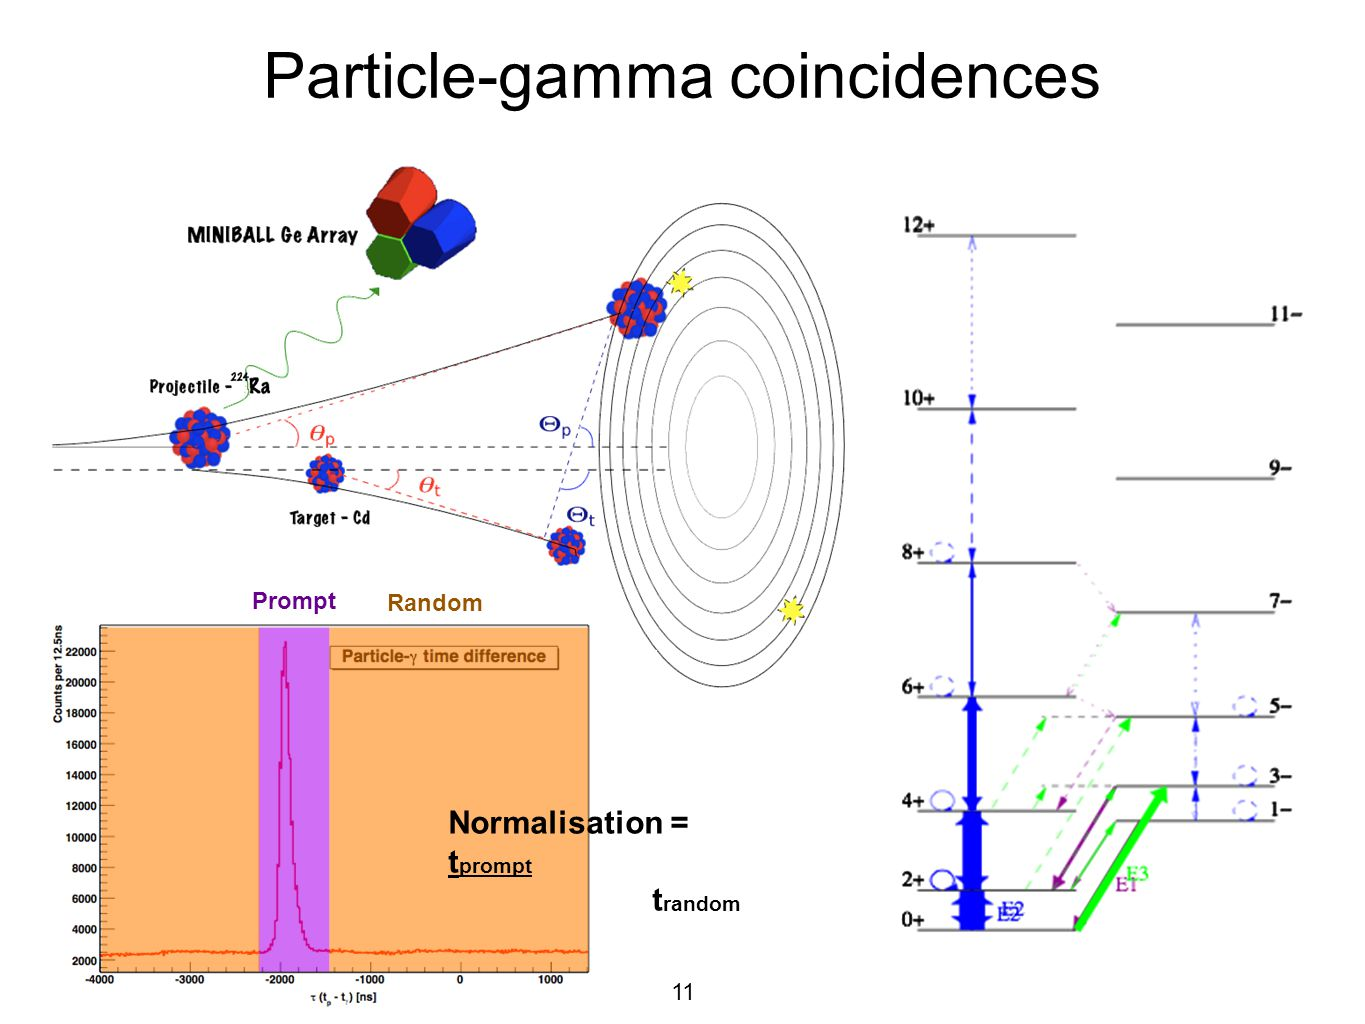 Particle-gamma coincidences